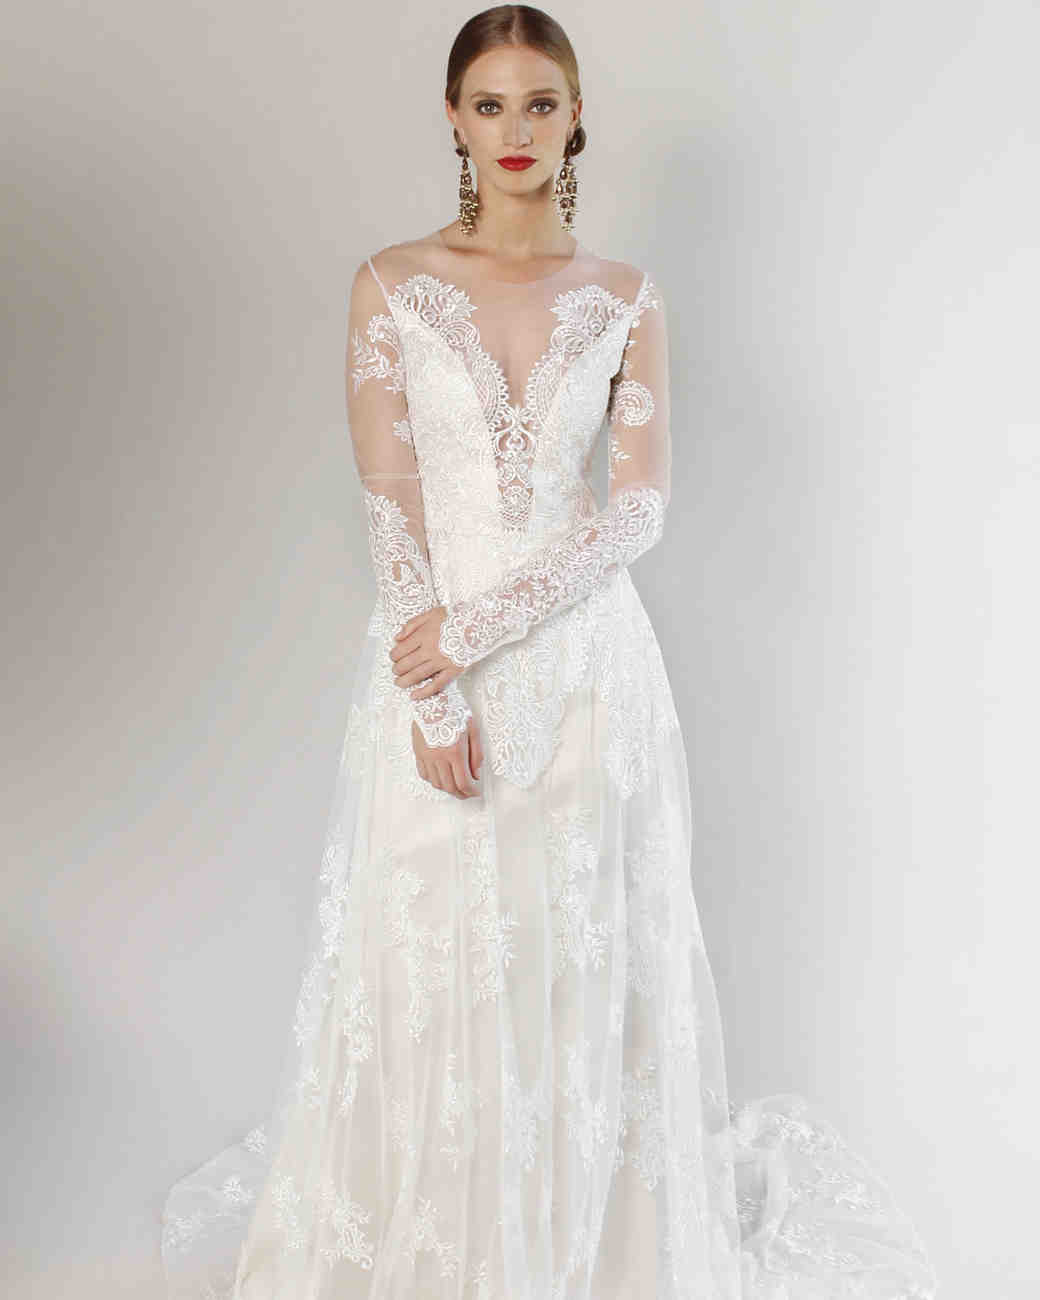 Claire Pettibone Wedding Dress: Claire Pettibone Spring 2017 Wedding Dress Collection